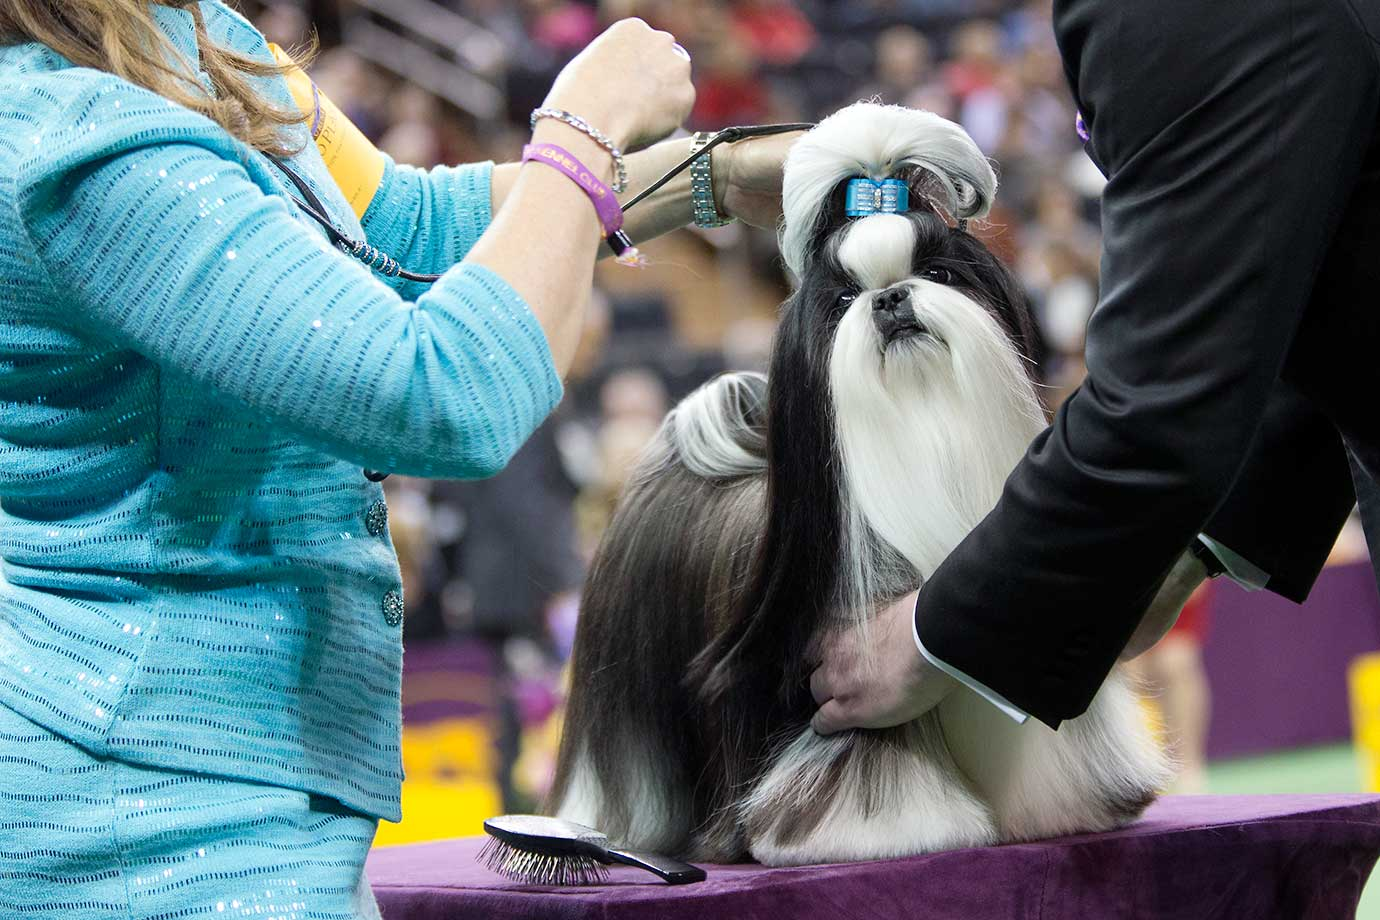 Panda, a shitzu, is inspected by a judge during the Toy group competition at the 140th Westminster Kennel Club dog show.